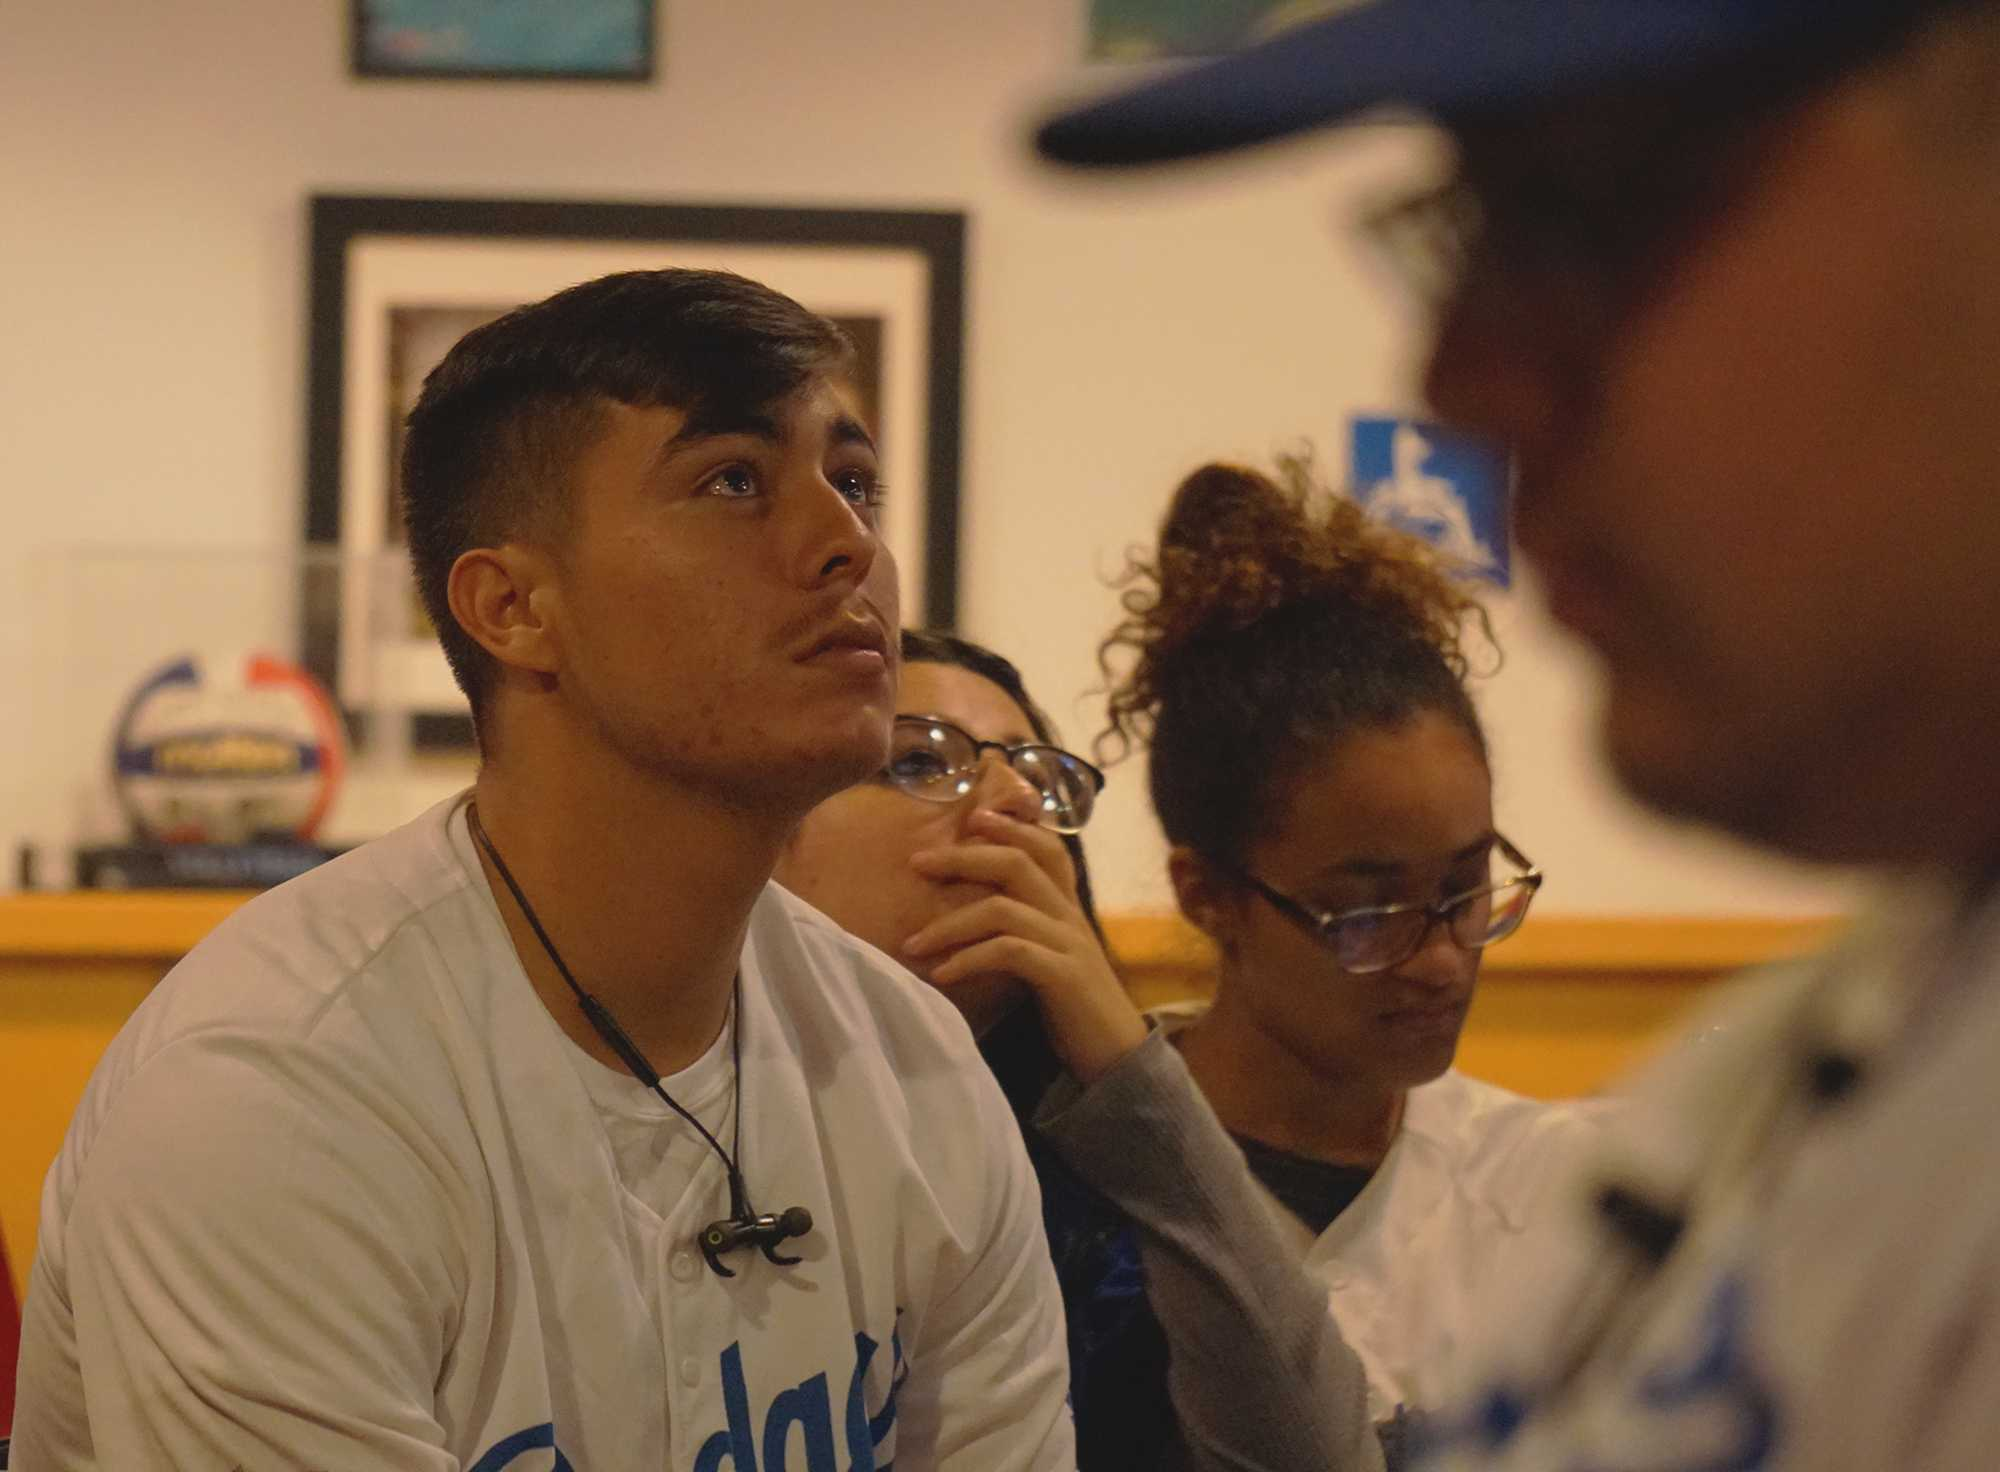 Dodgers Fans and CSUN Students, Daniel Reyes (left) and Beverly Figueroa (middle left) watch the Astros take to the field after beating out the Dodgers in the World Series 2017. Photo credit: Aaron Lanuza